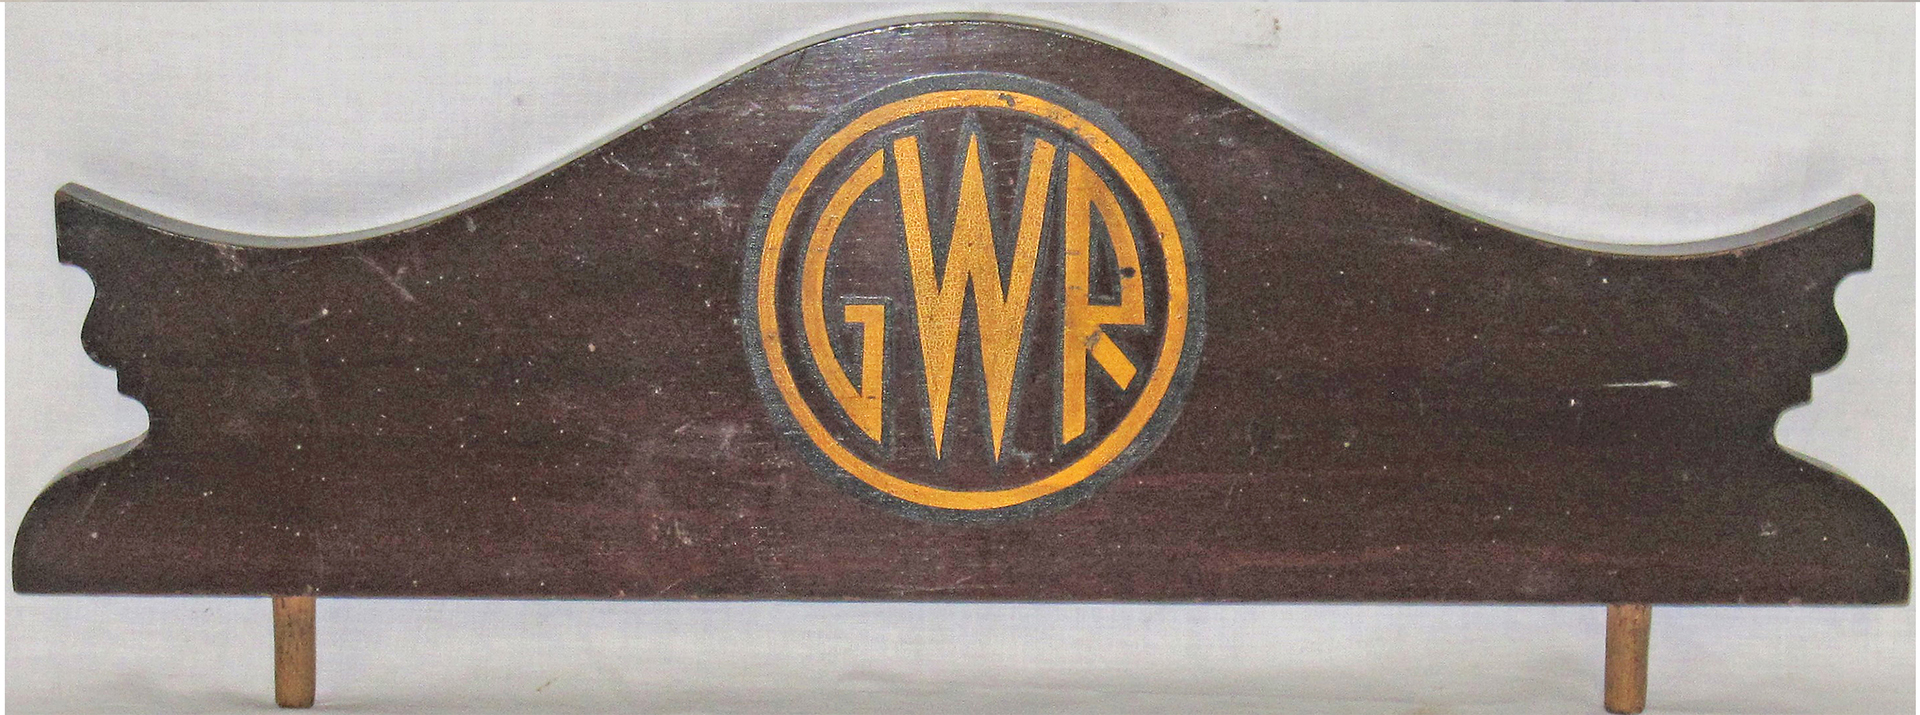 GWR wooden sign fitted with pins for mounting on a cabinet with original GWR 1935 monogram